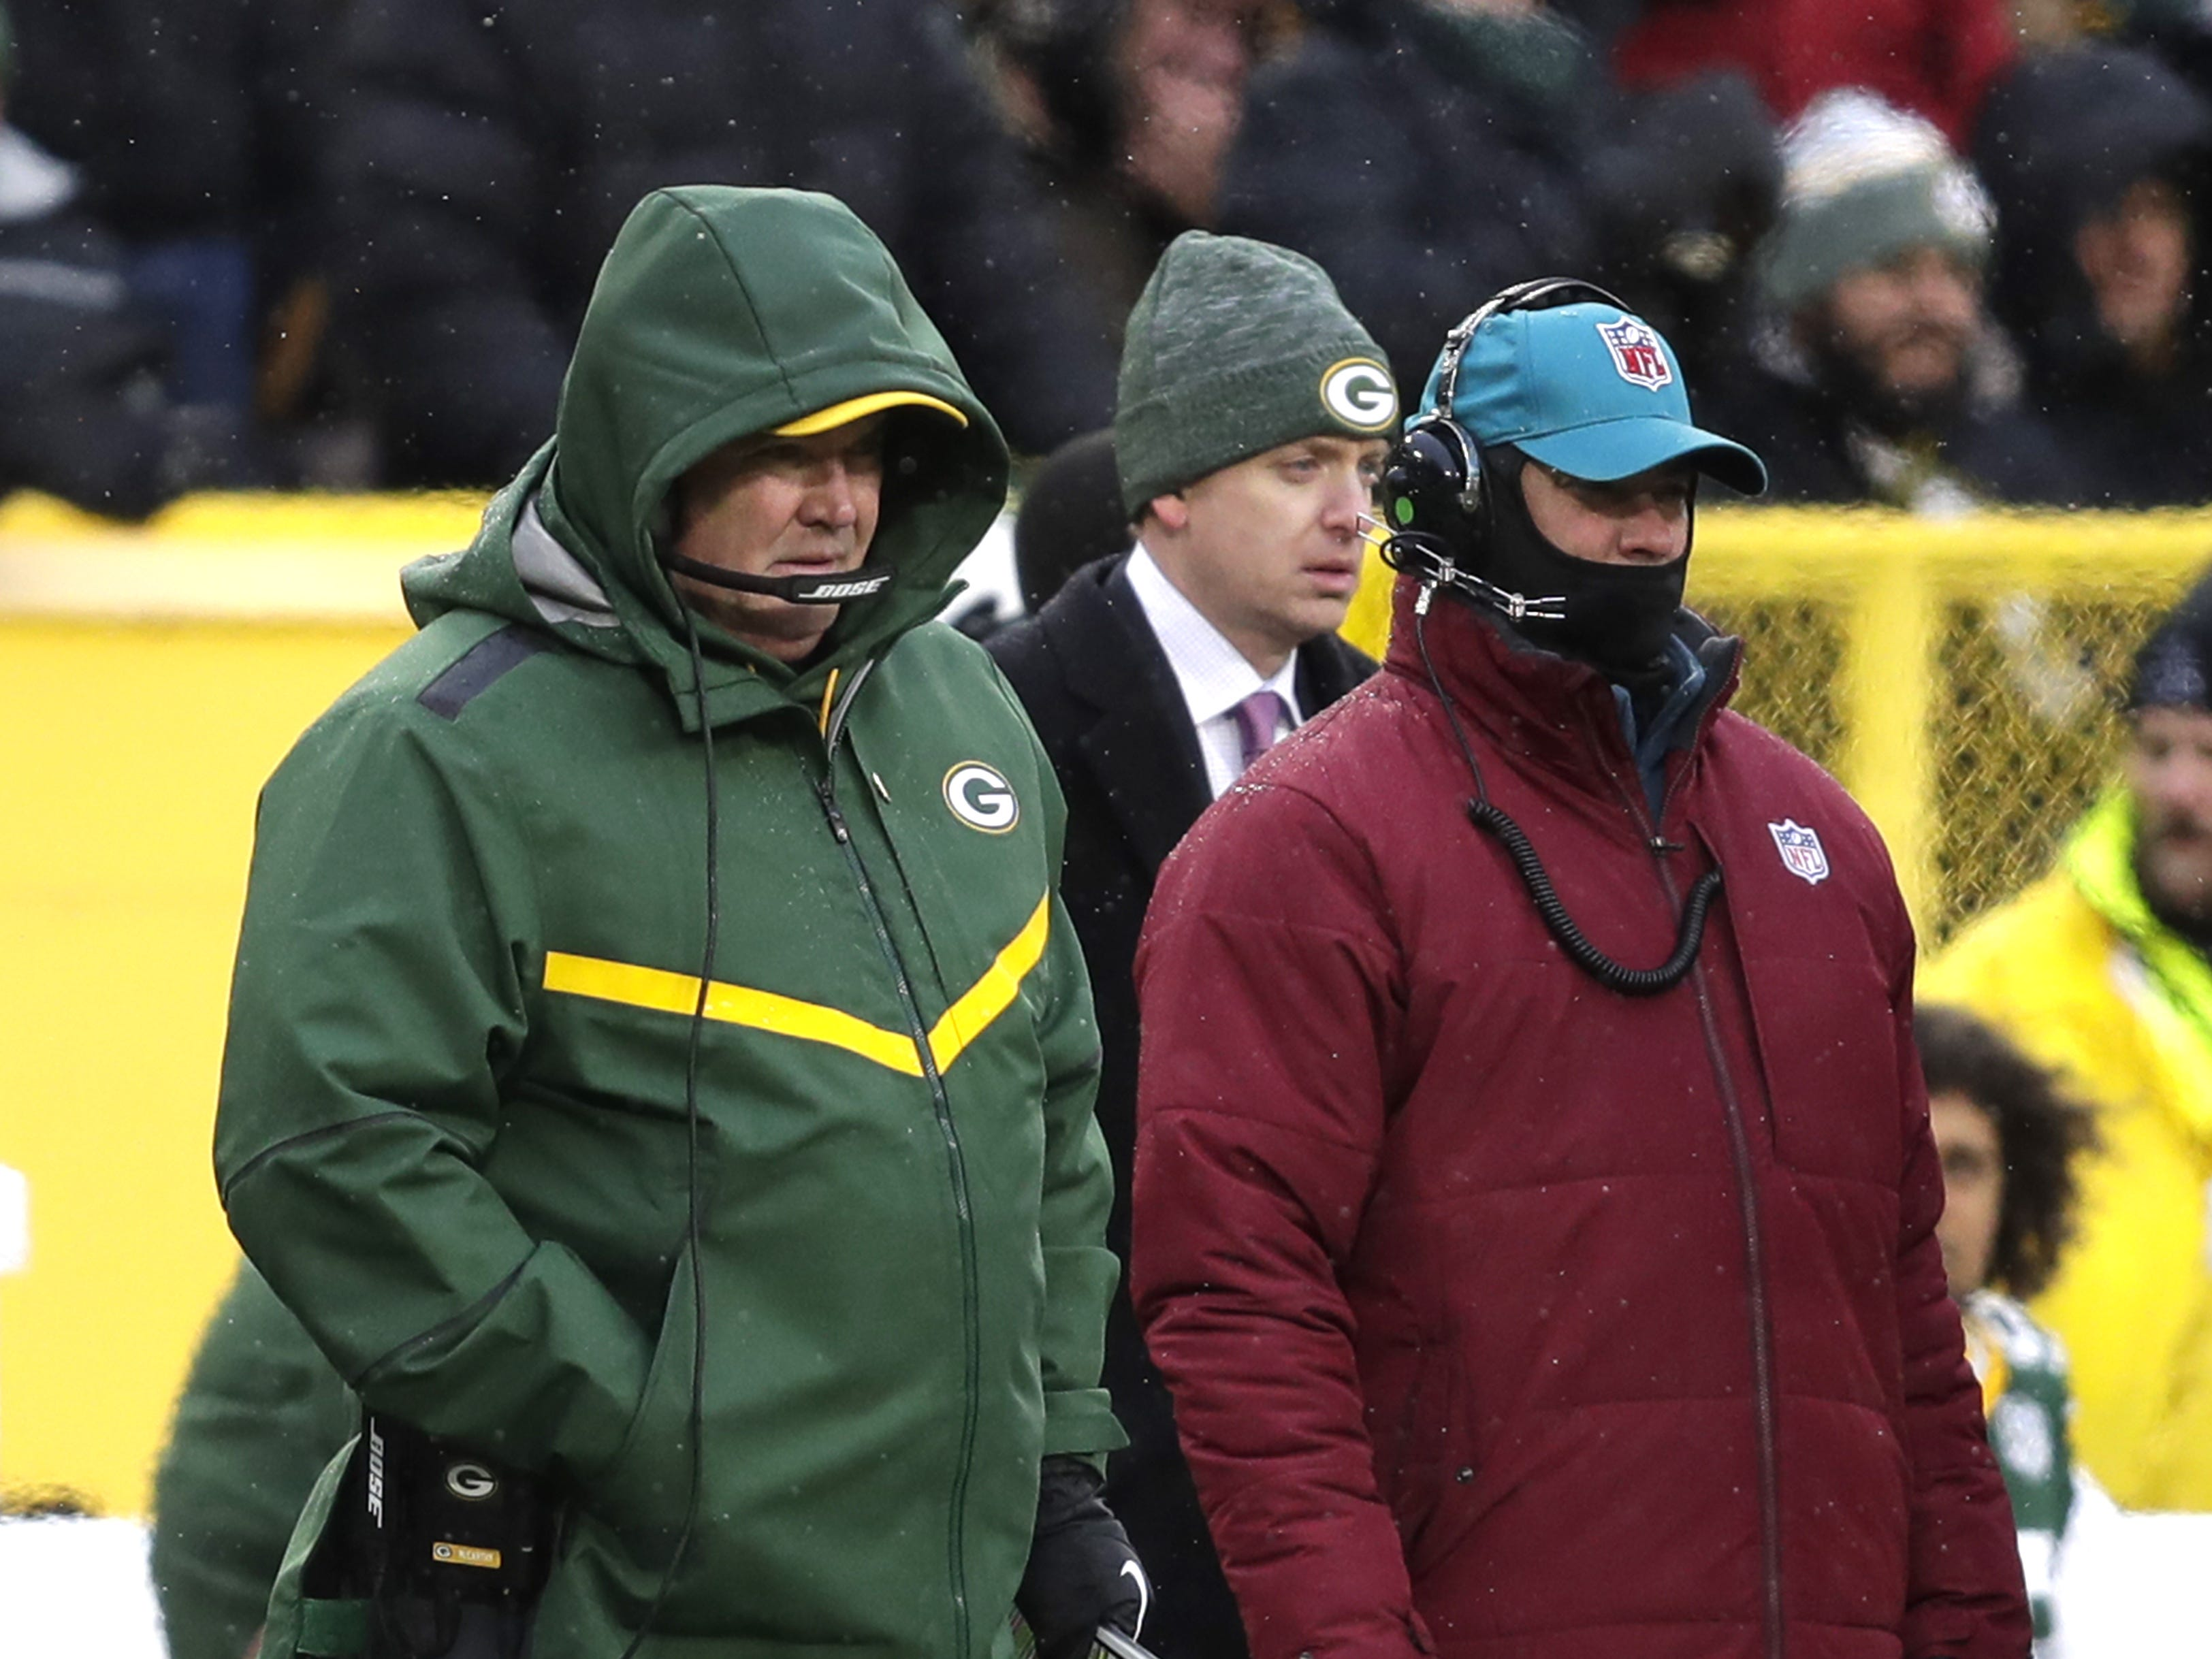 Green Bay Packers coach Mike McCarthy works the sidelines as the team plays against the Arizona Cardinals Sunday, December 2, 2018, at Lambeau Field in Green Bay, Wis.